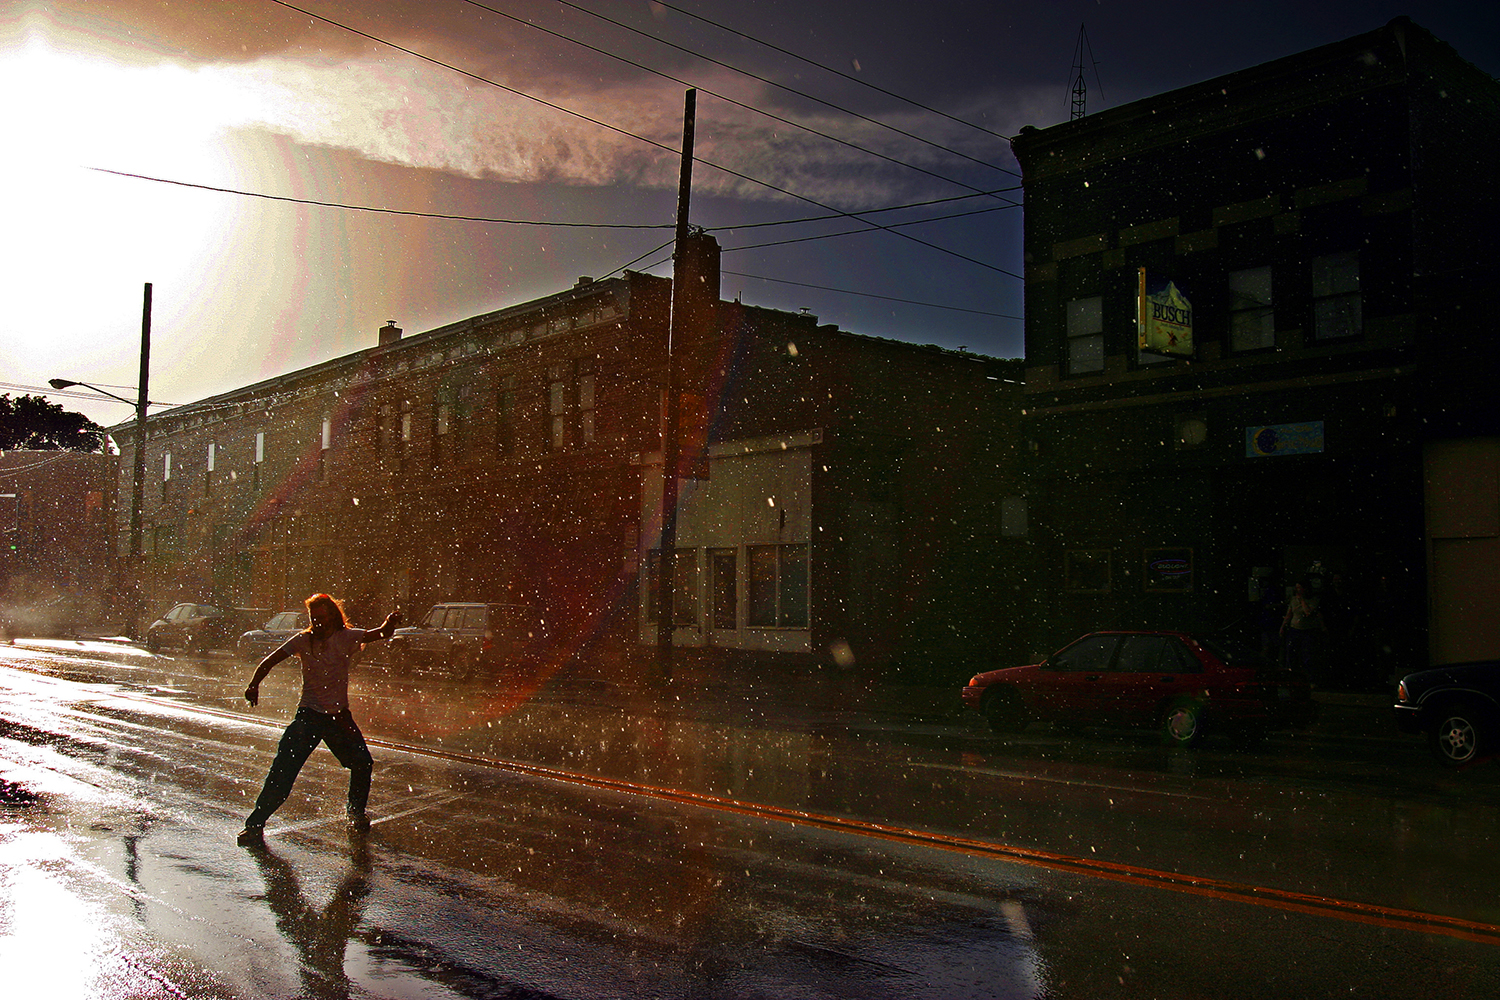 Rick Mari slides across a wet South Grand Avenue following a thunderstorm. Michael Brown/The State Journal-Register